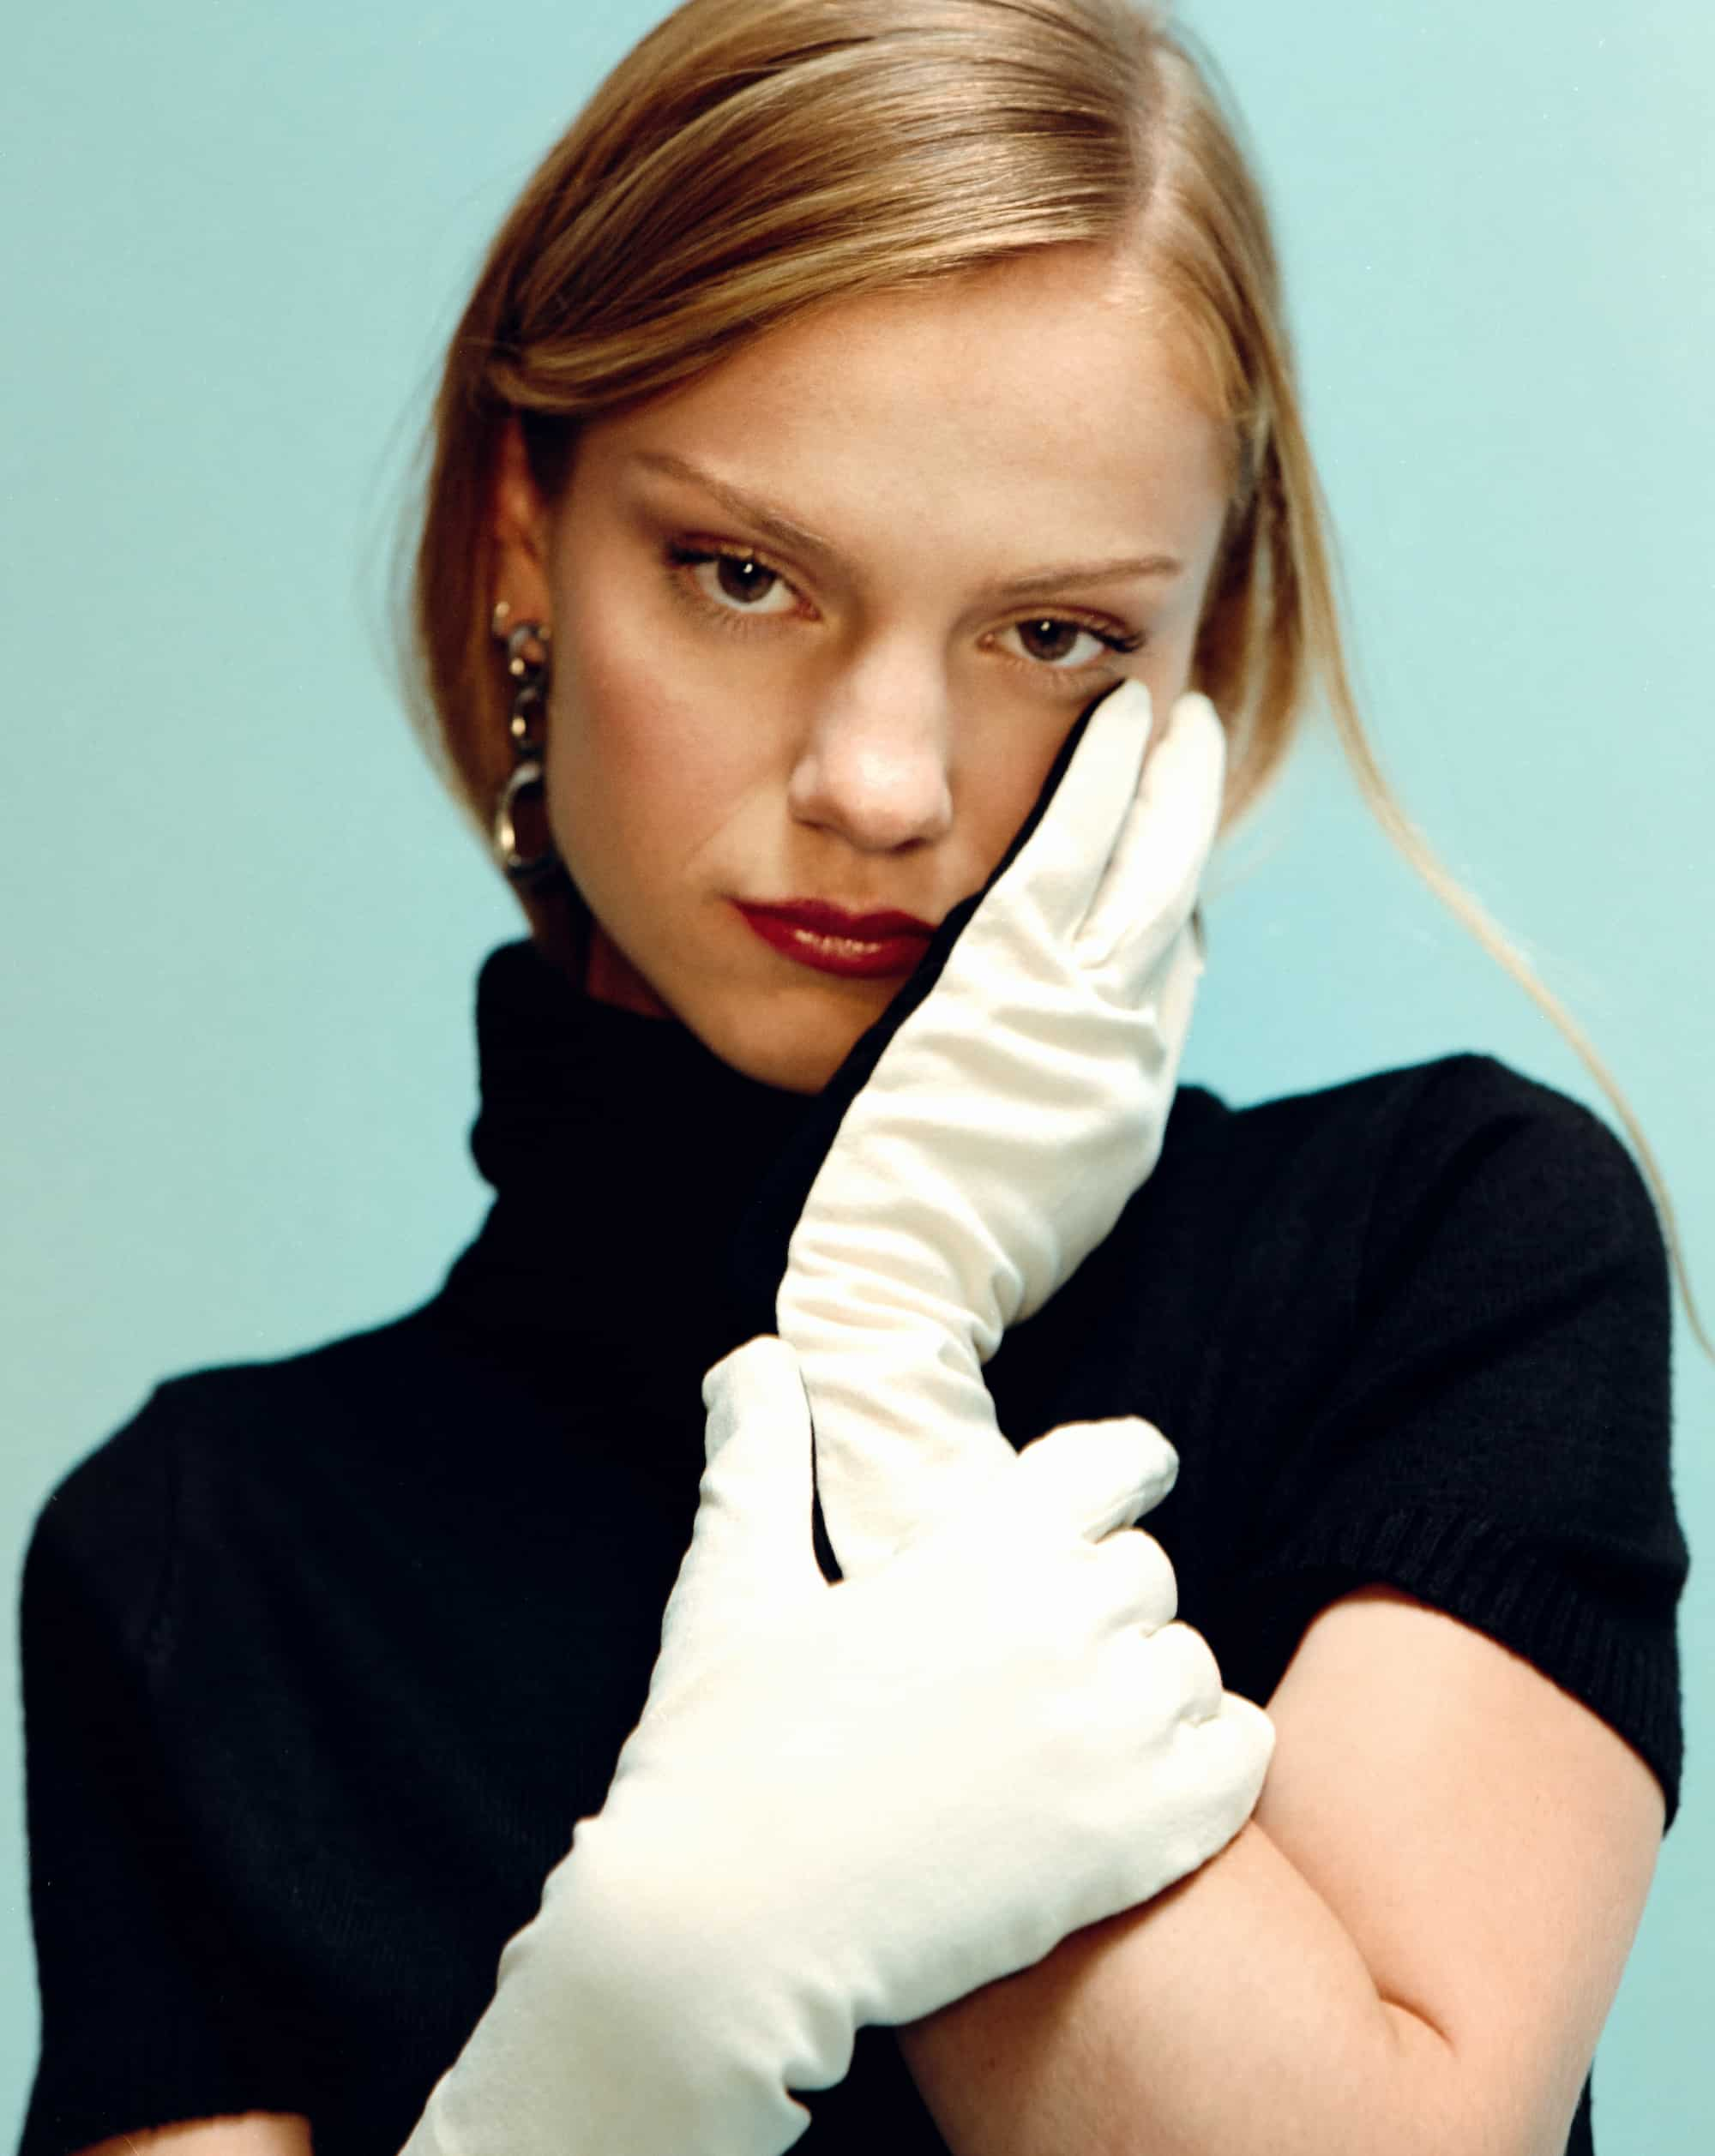 Amilli is posing with white gloves and a black dress, one of her hands is on her shin, the other is holding her wrist. She is wearing back in a light blue background, her face looks sexy but also serious, like a real deal!